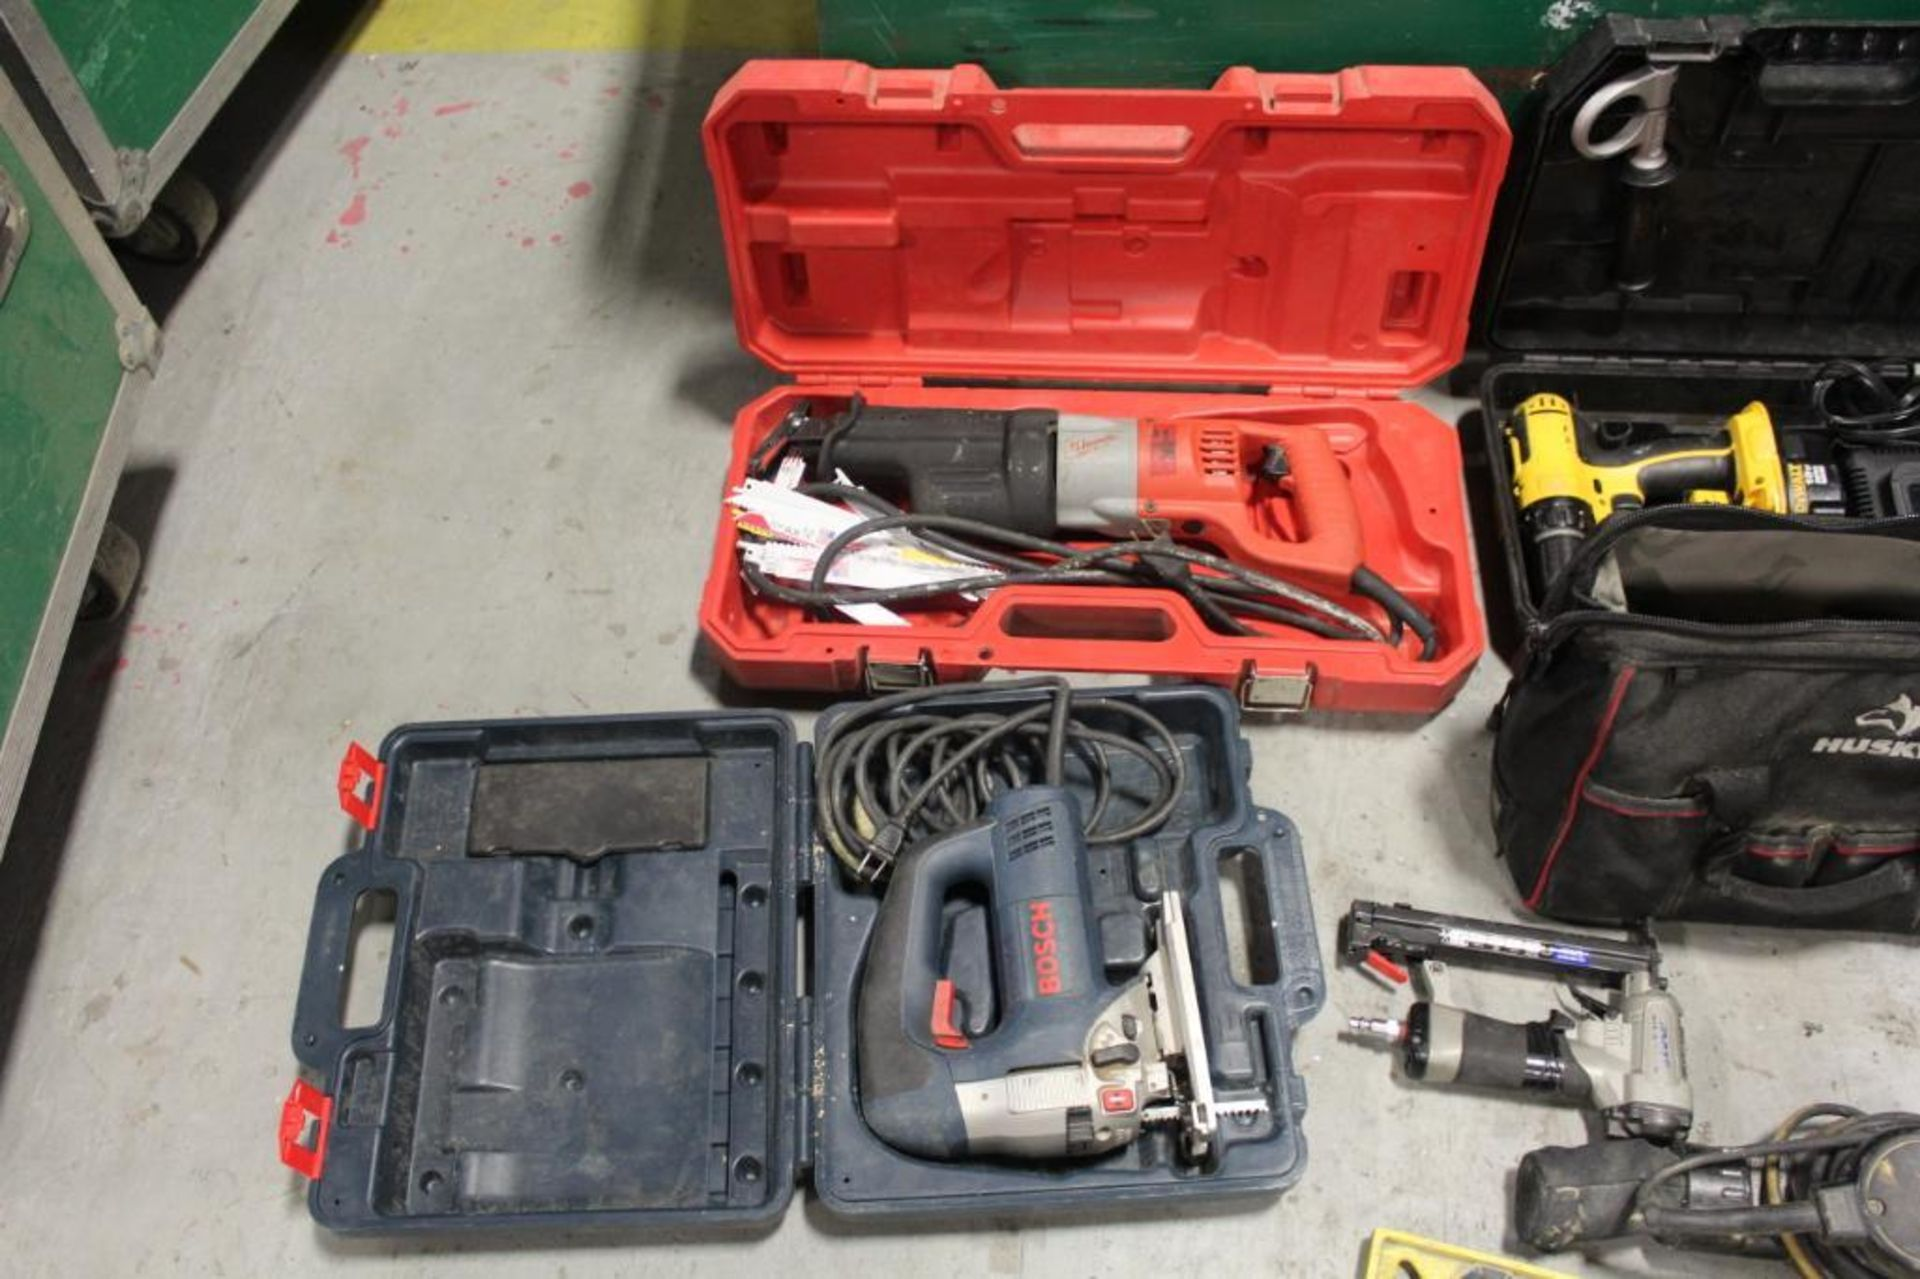 Greenlee tool box w/contents - Image 3 of 7